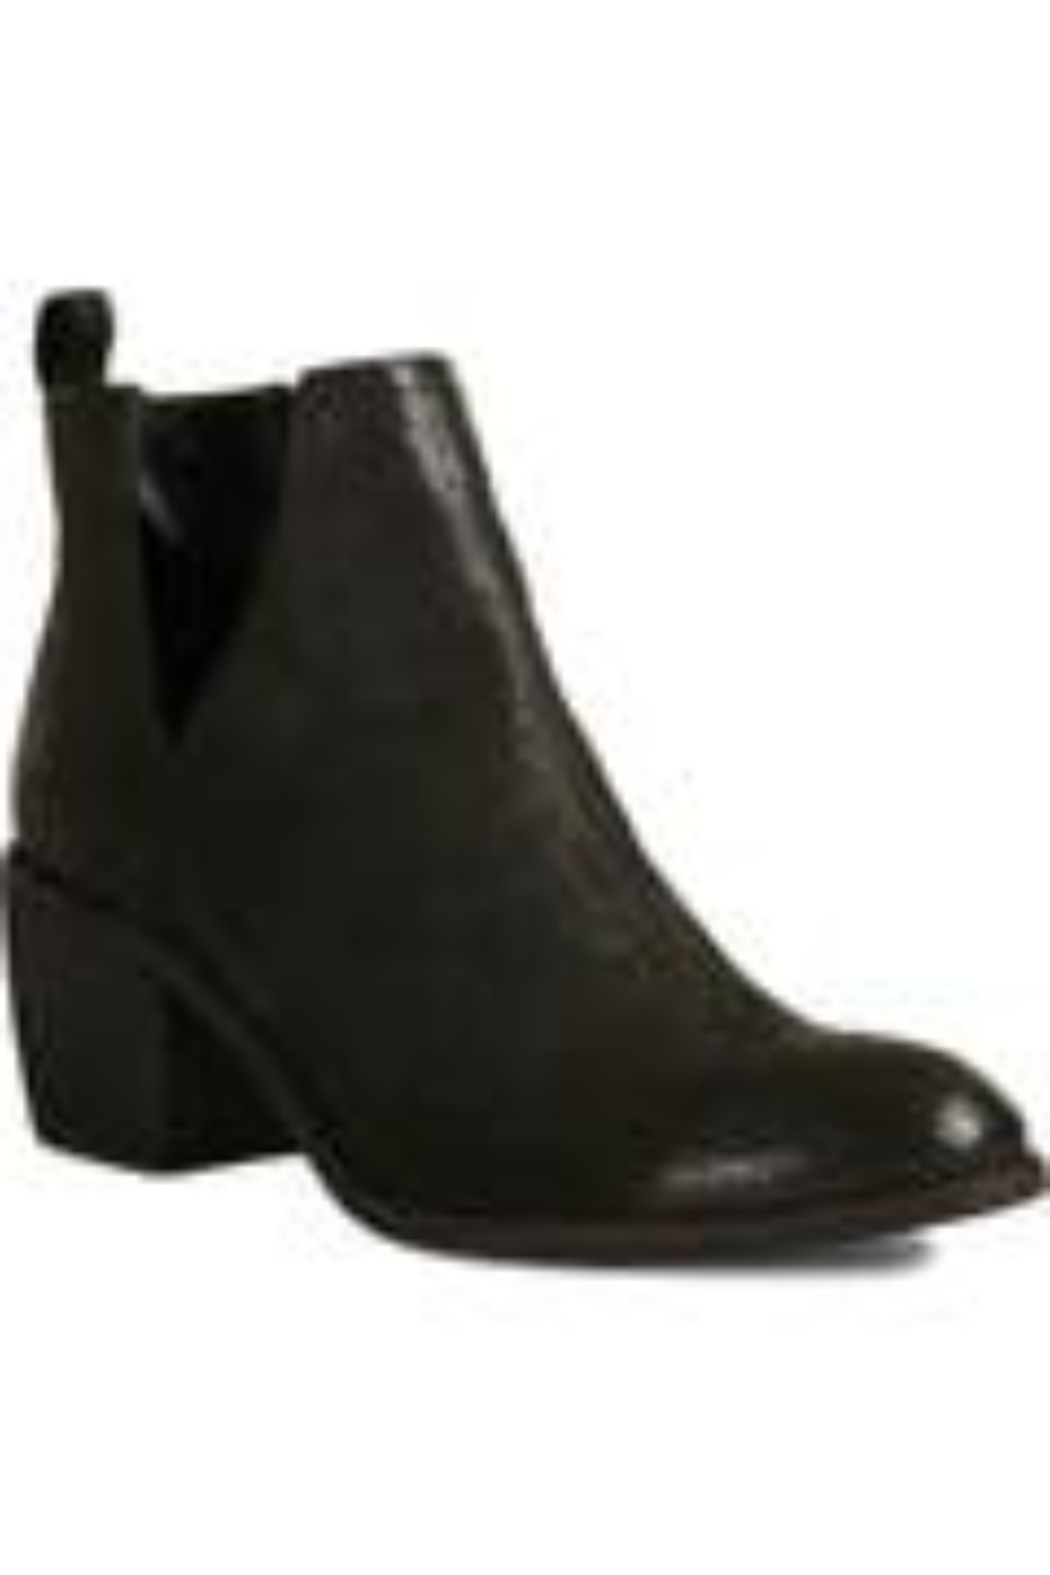 Band Of Gypsies Nubuck bootie - Front Cropped Image